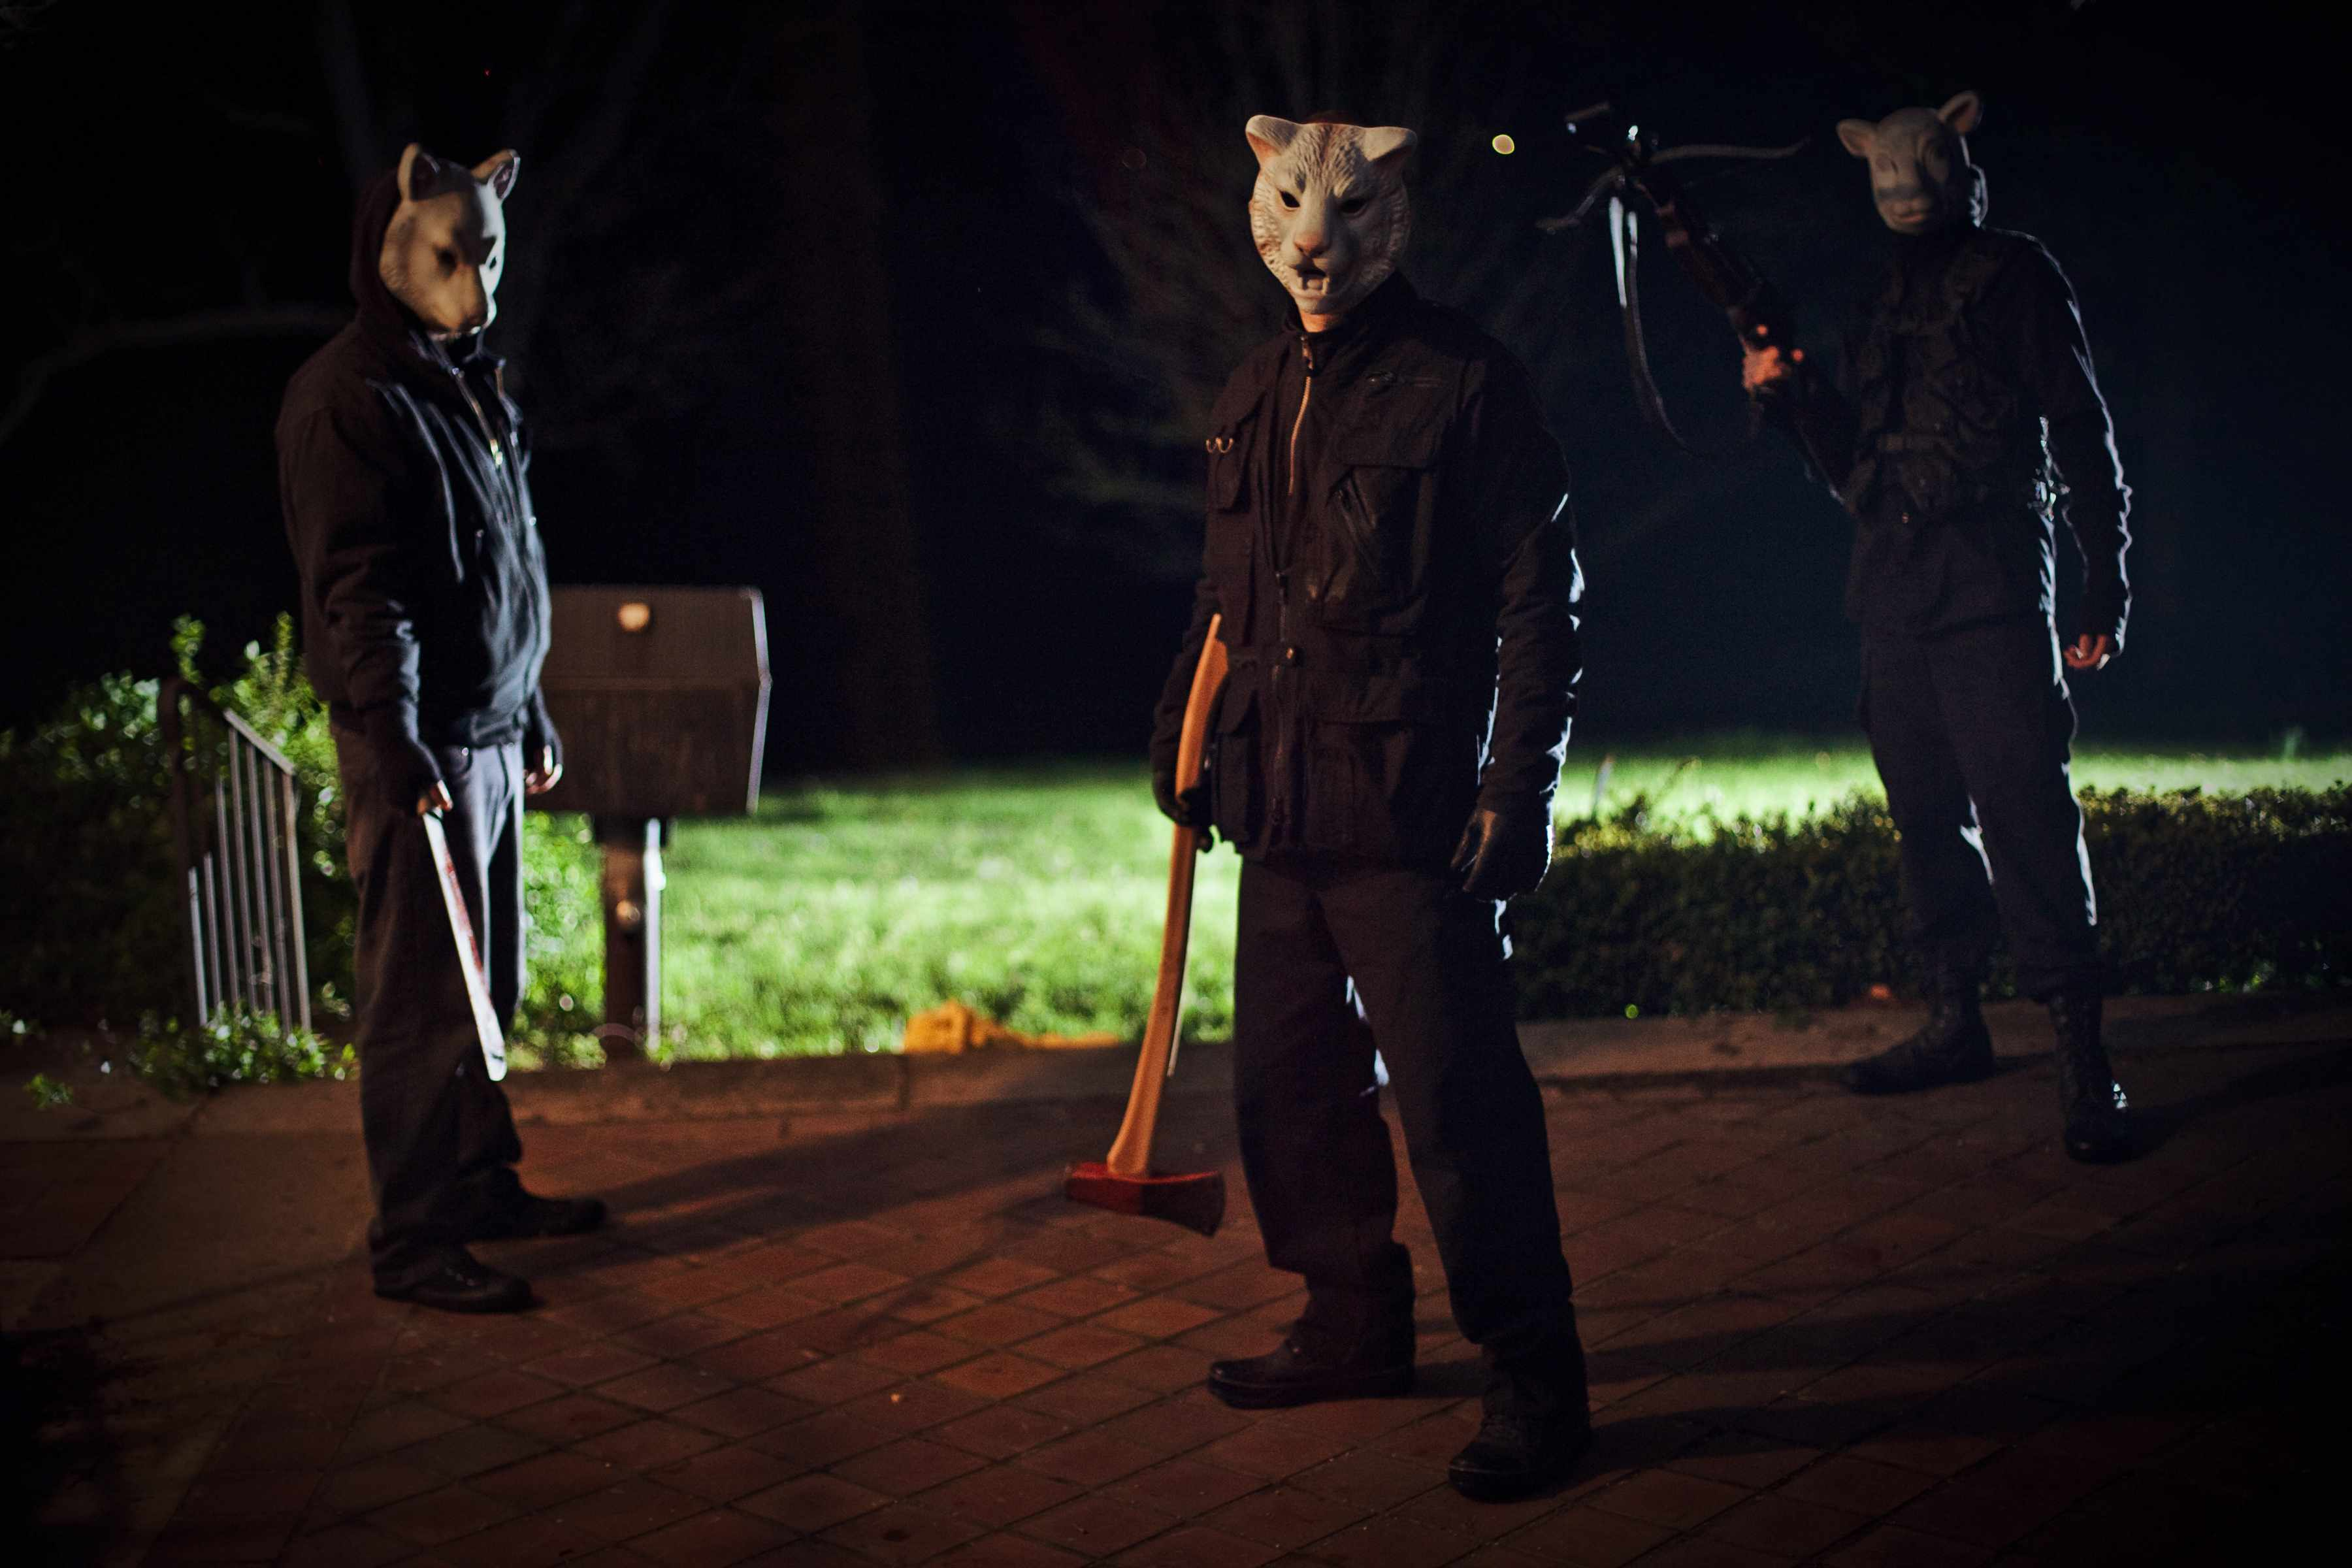 The masked assailants in You're Next (2011)